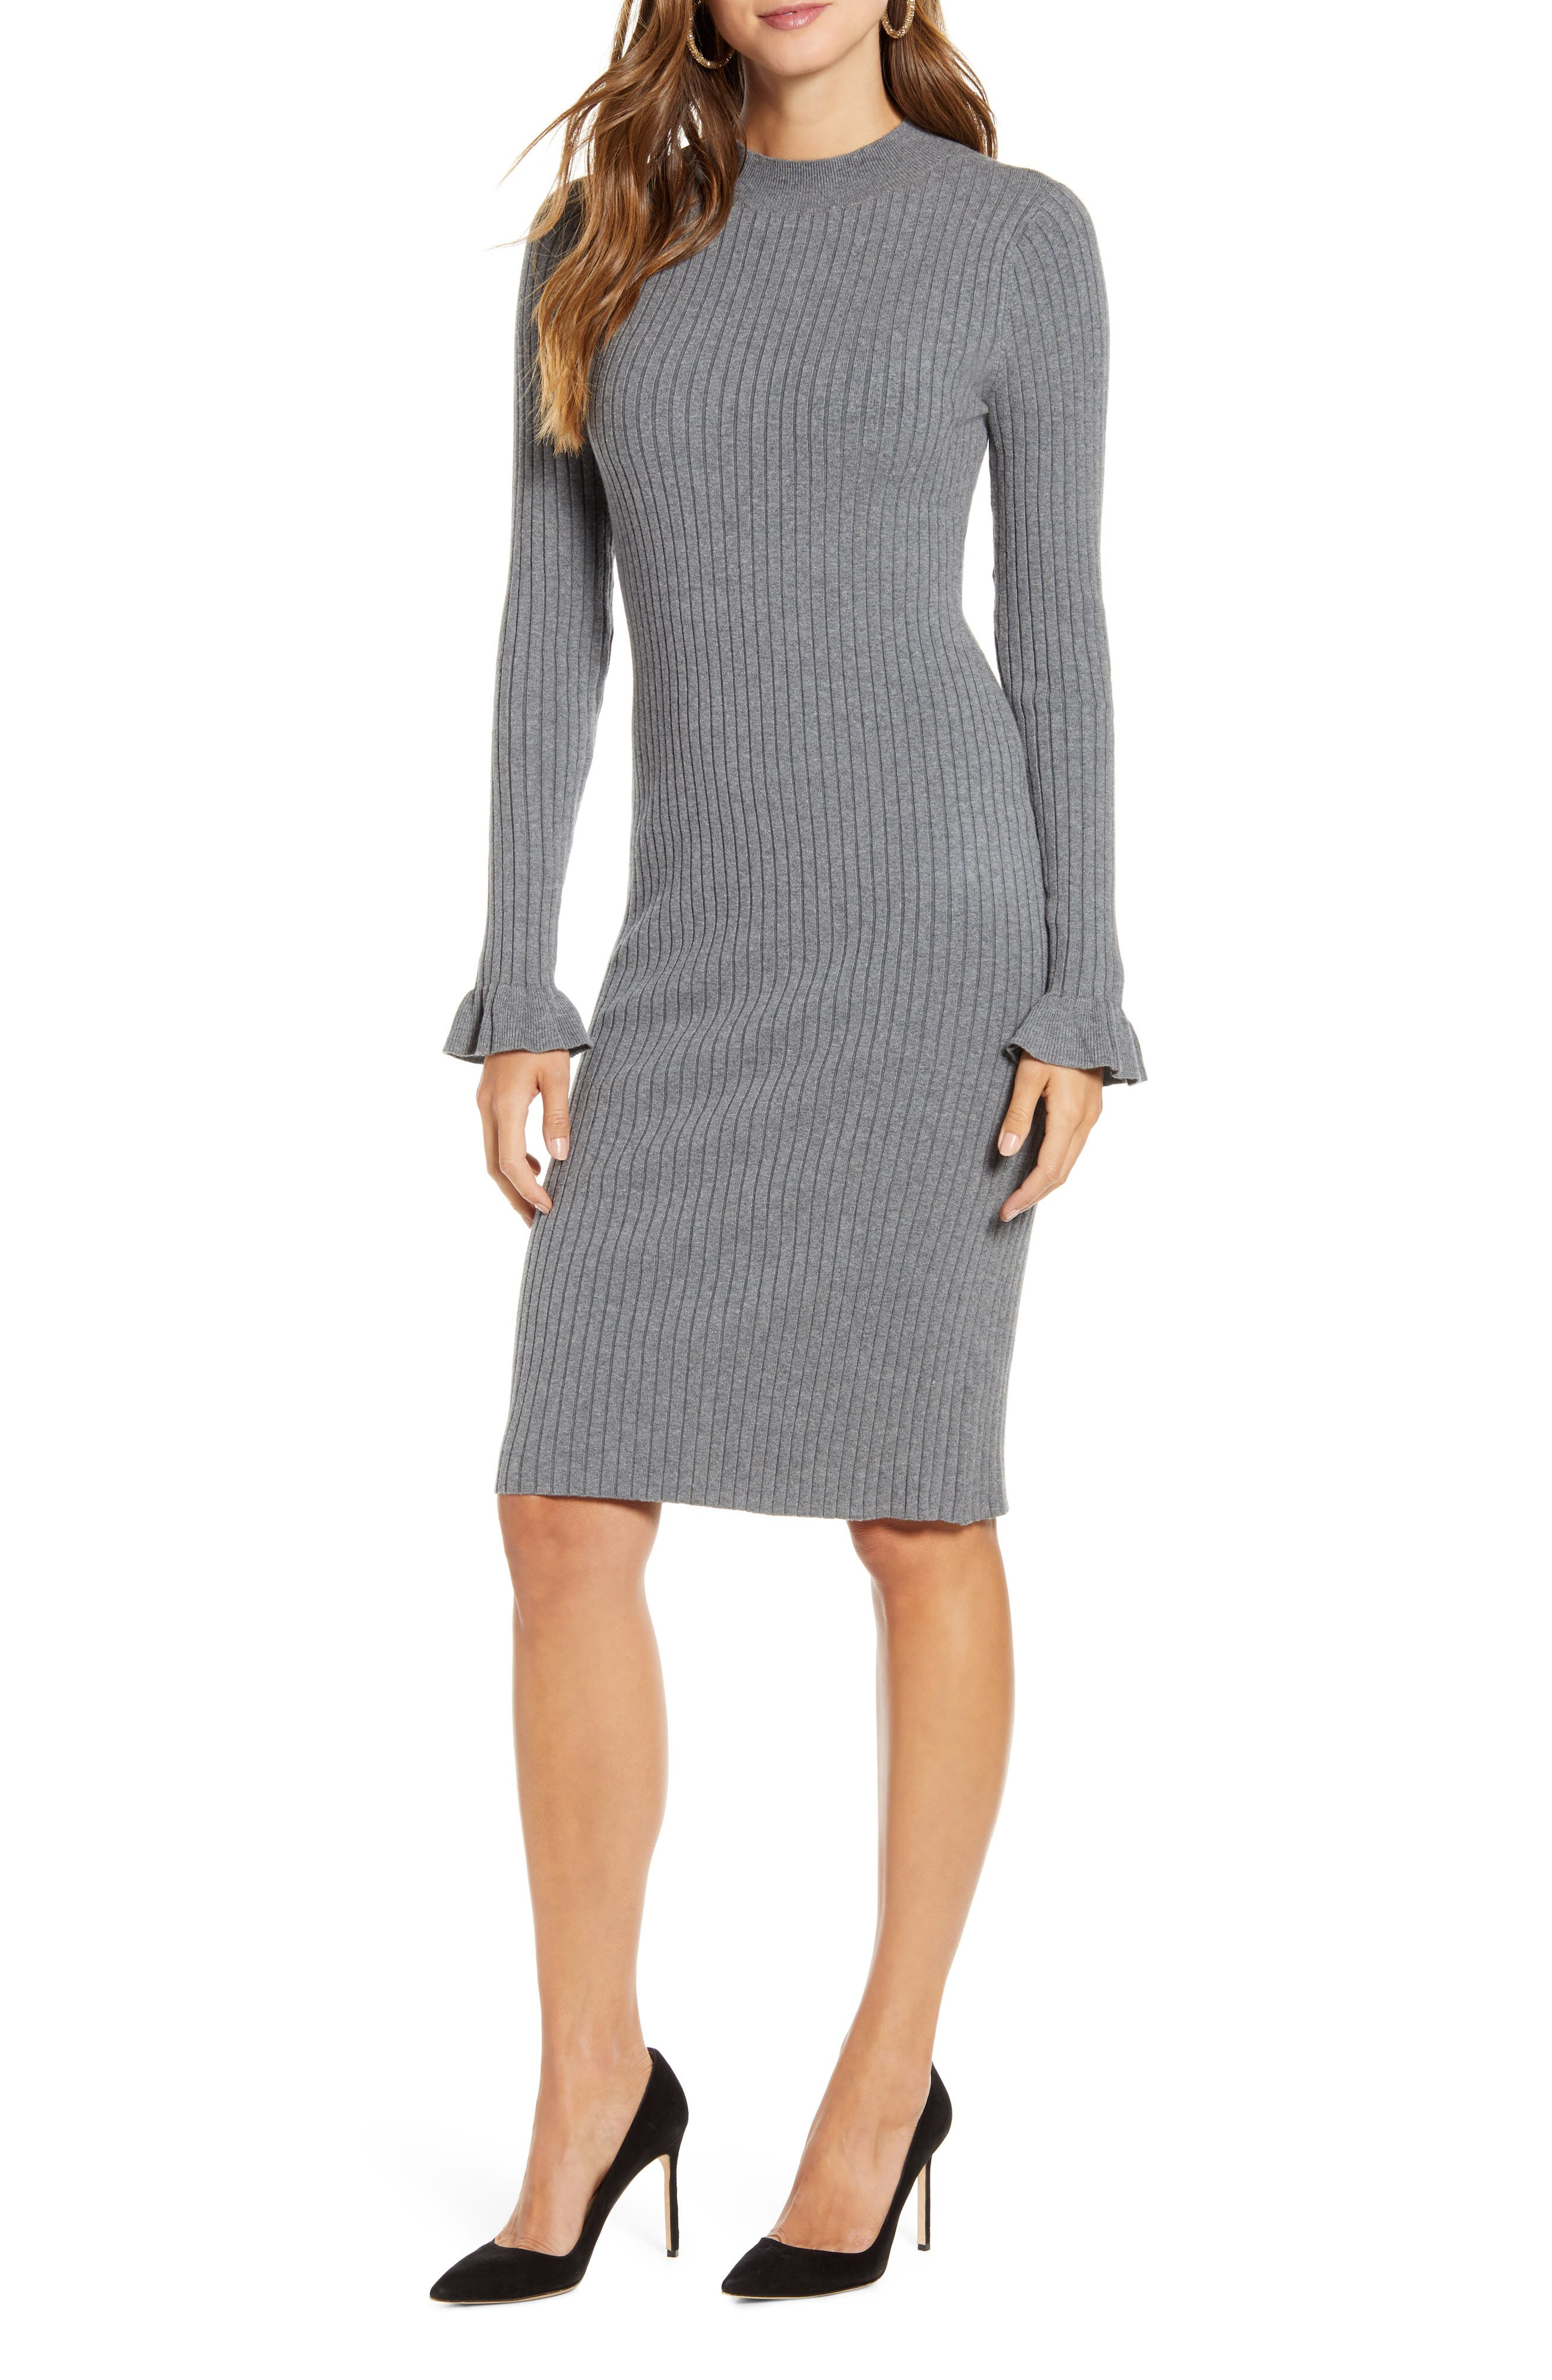 Rachel Parcell Rib Sweater Dress (Nordstrom Exclusive)